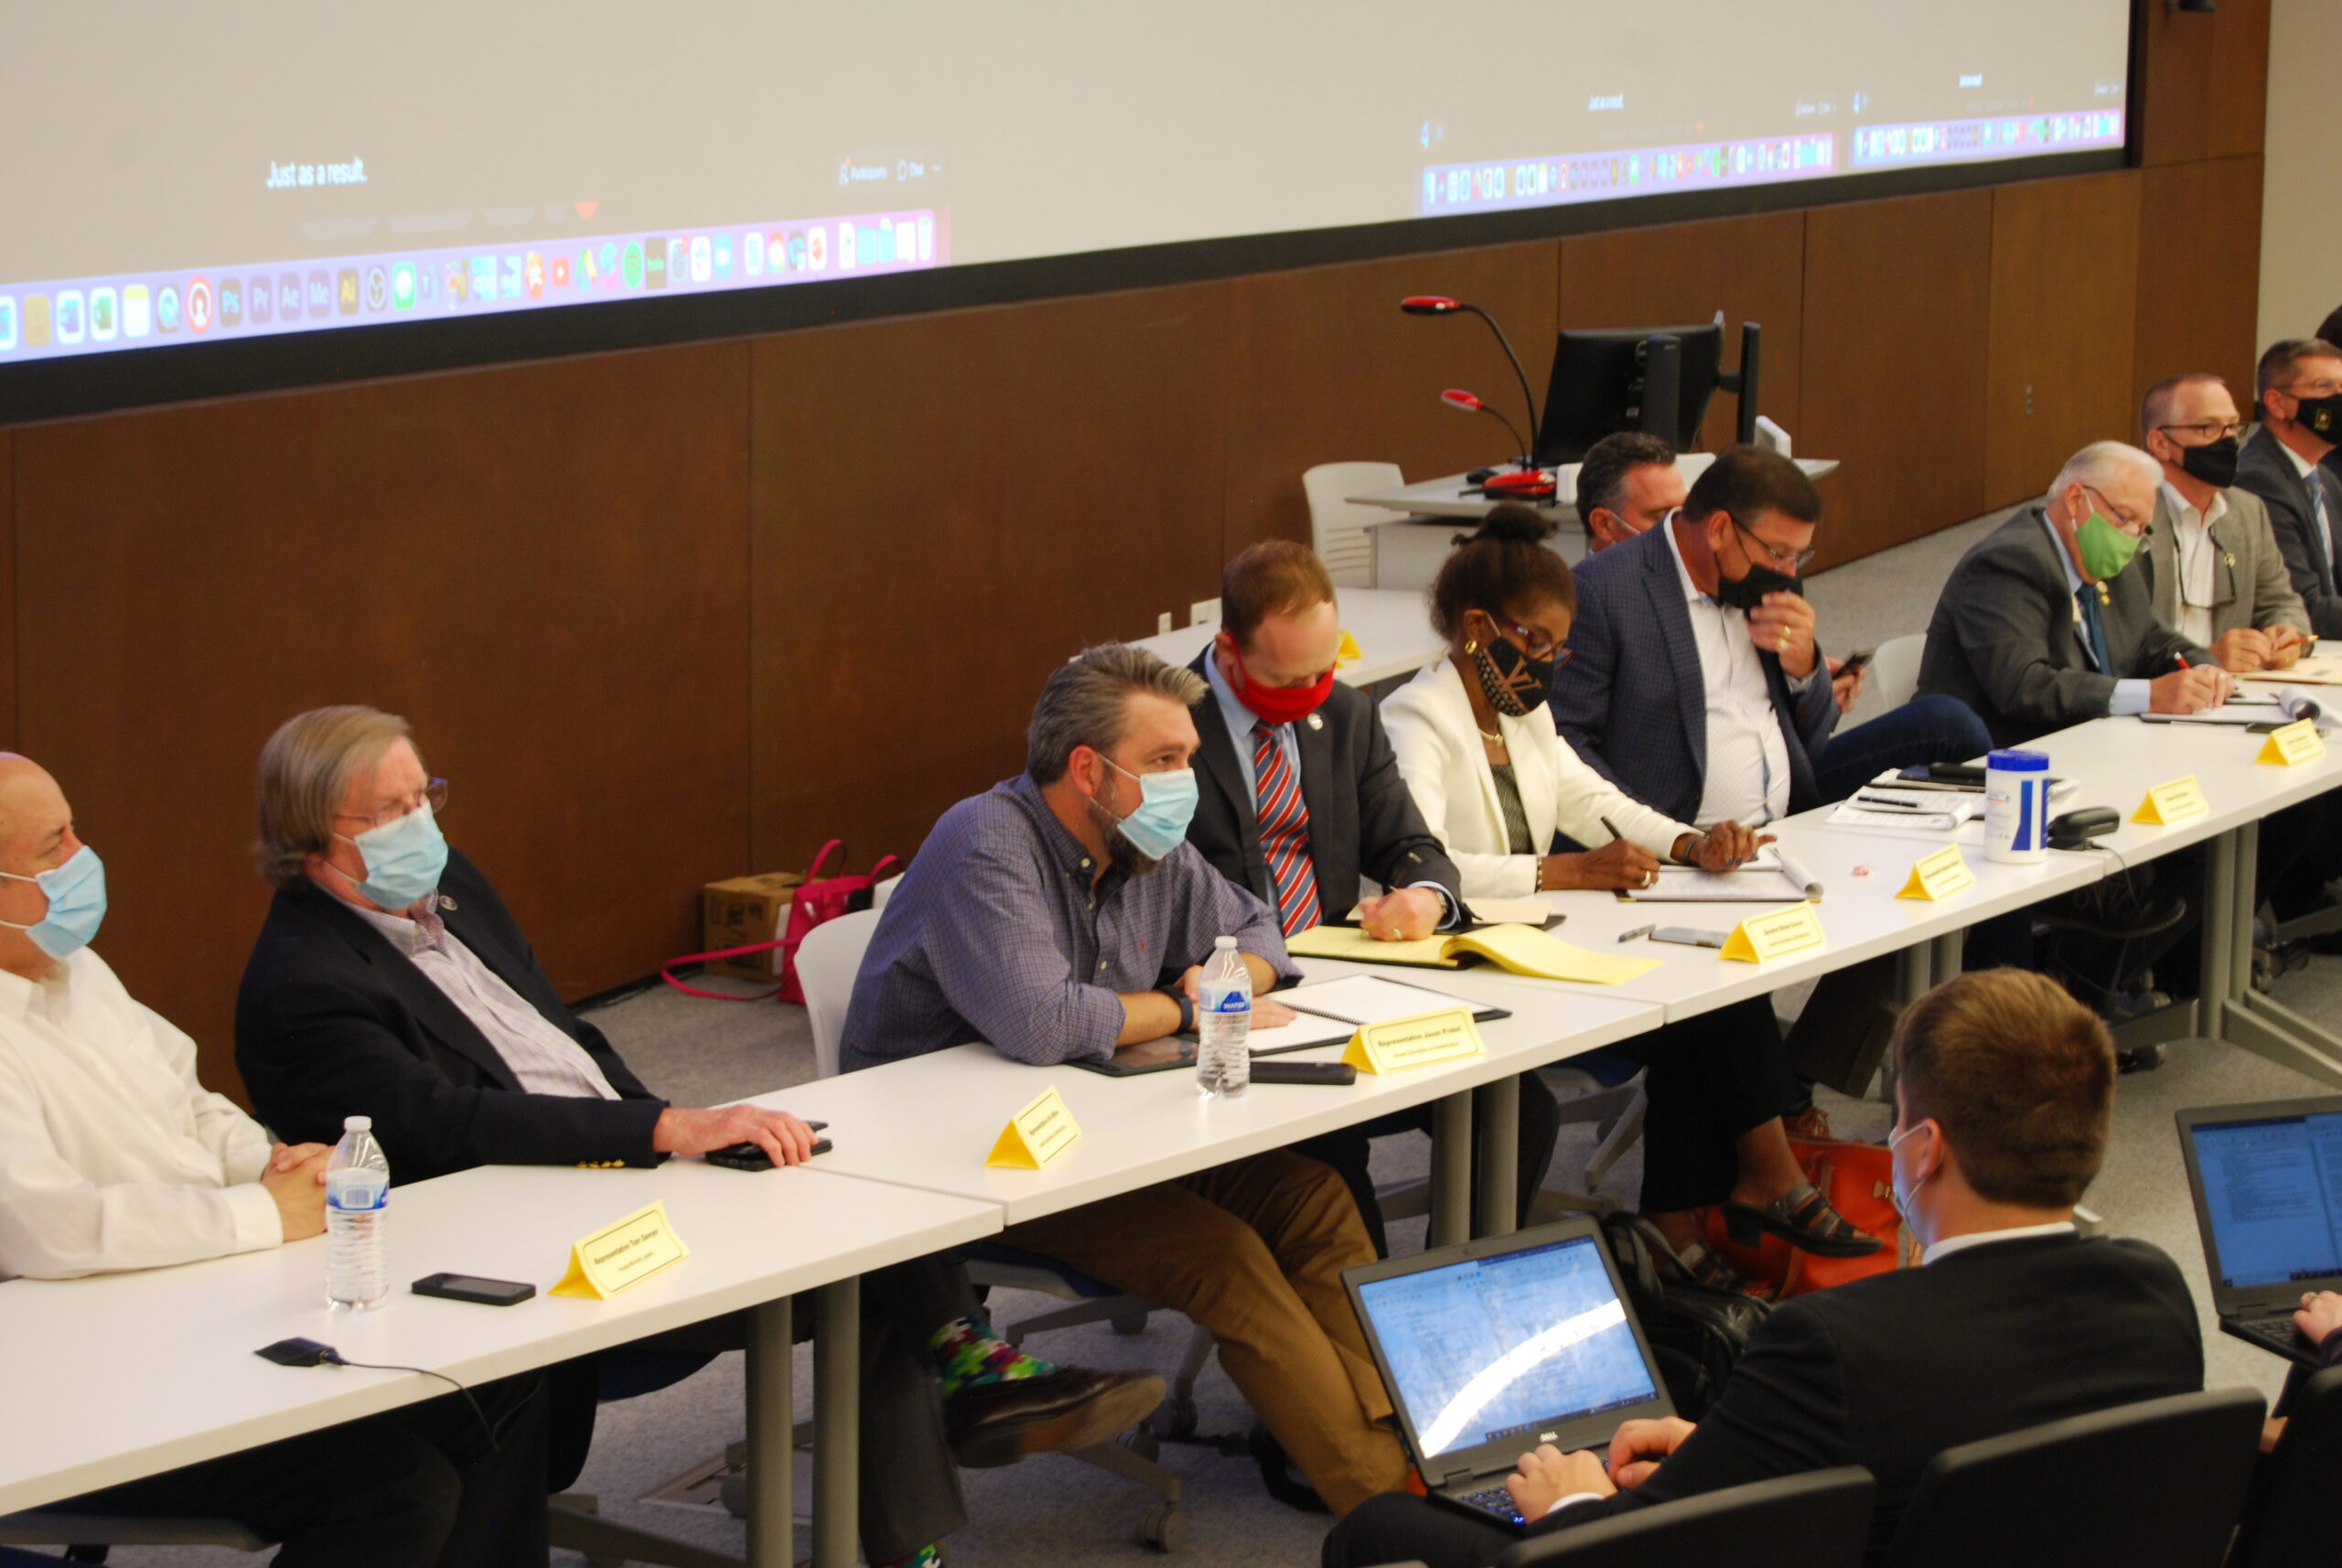 Lawrence redistricting town hall participants object to racial, prison gerrymandering